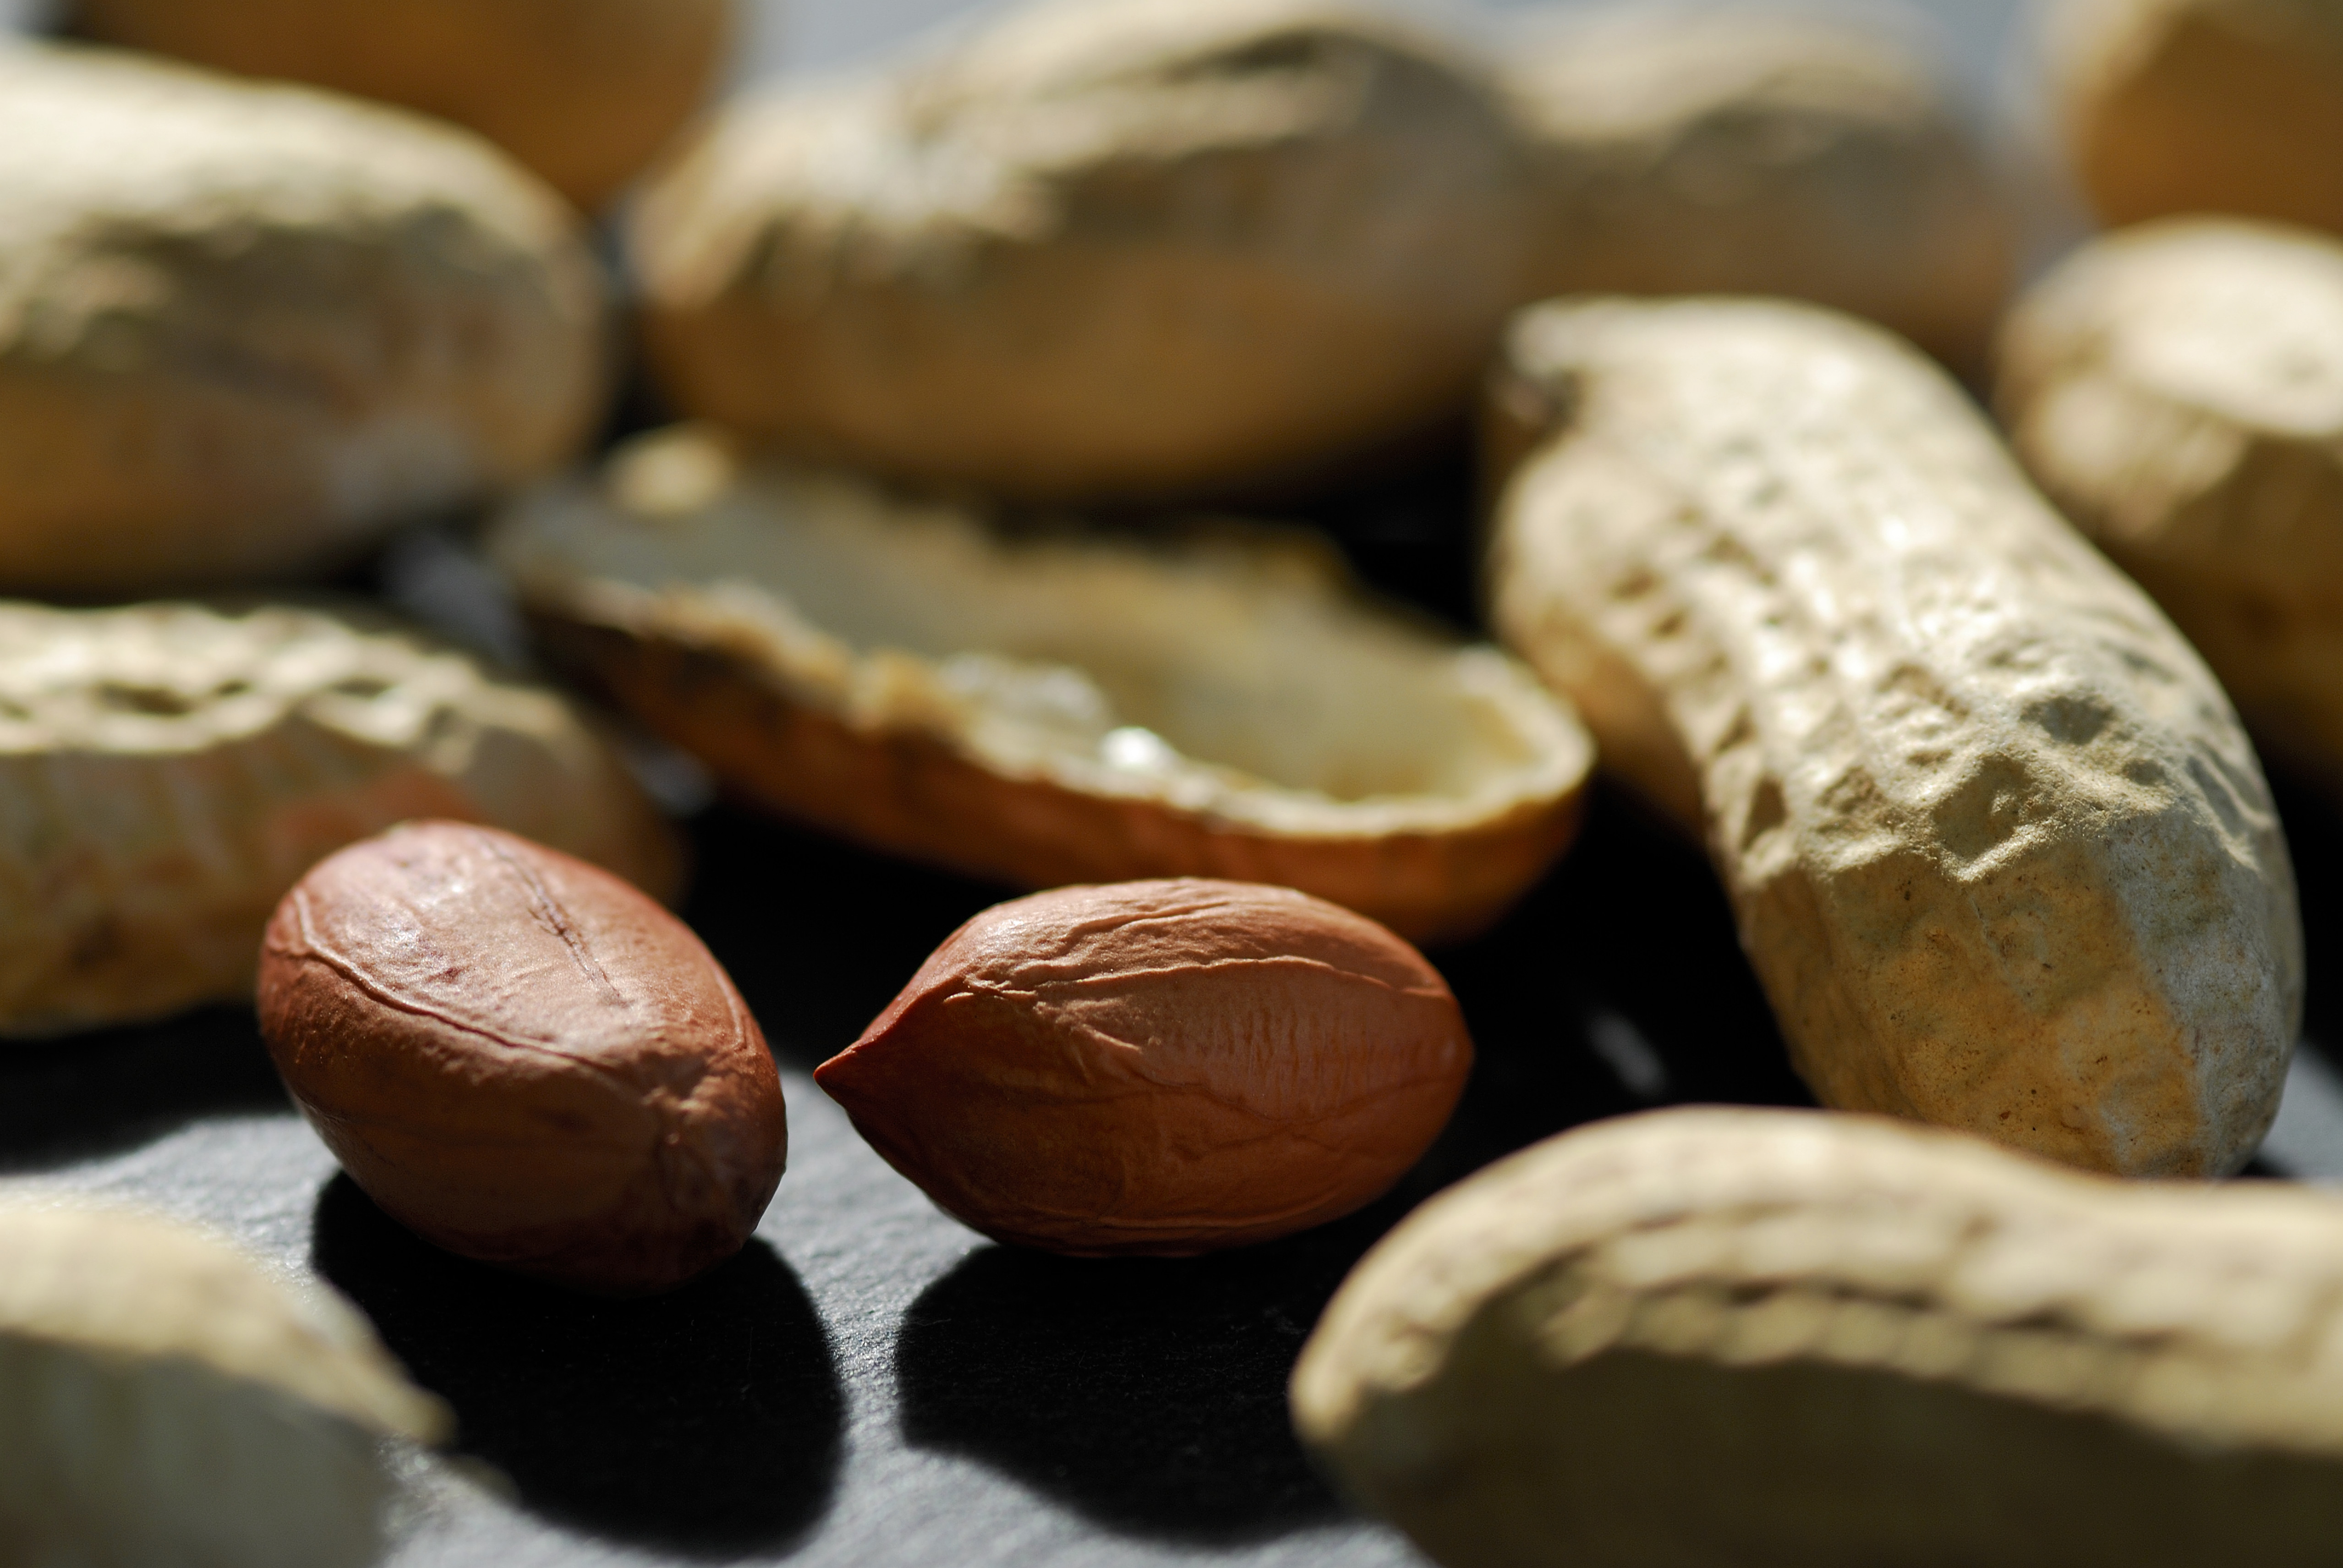 Peanut allergies have risen sharply, but a new therapy is in the beginning stages of research